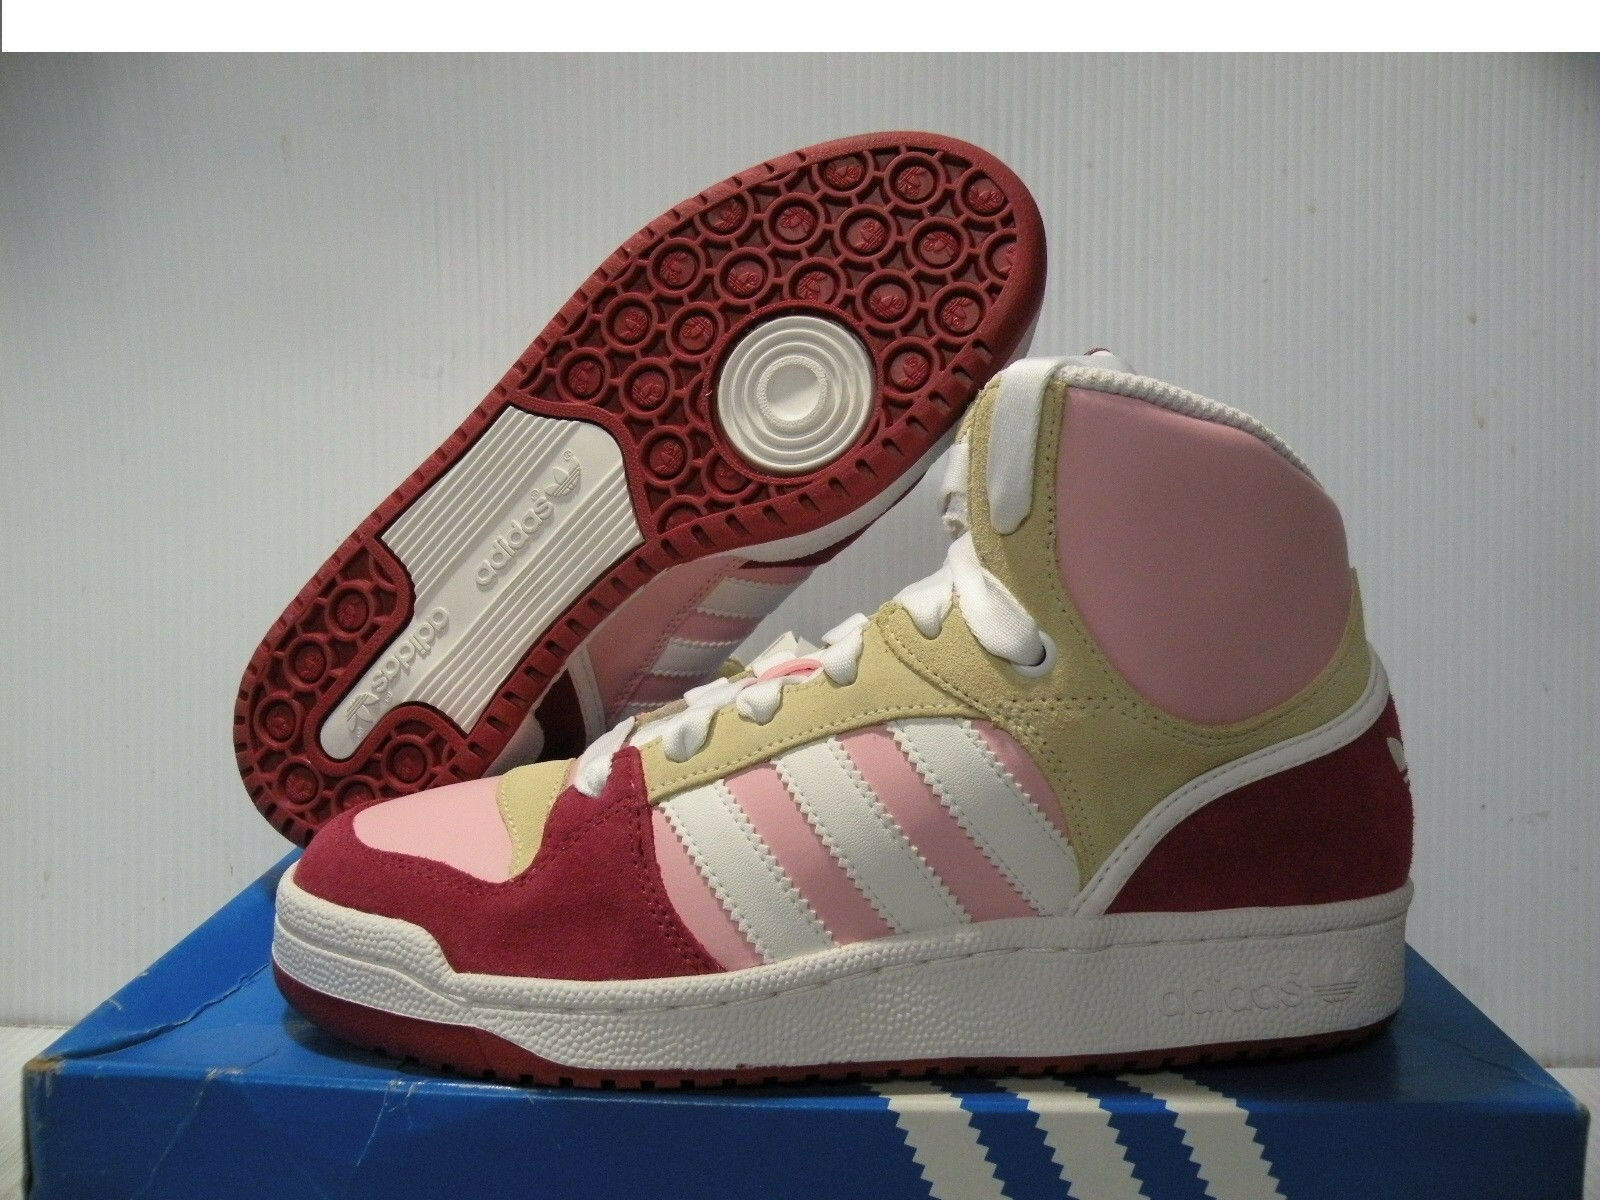 ADIDAS GAME MID SNEAKERS WOMEN SHOES PINK/RED/WHITE G09765 SIZE 9 NEW